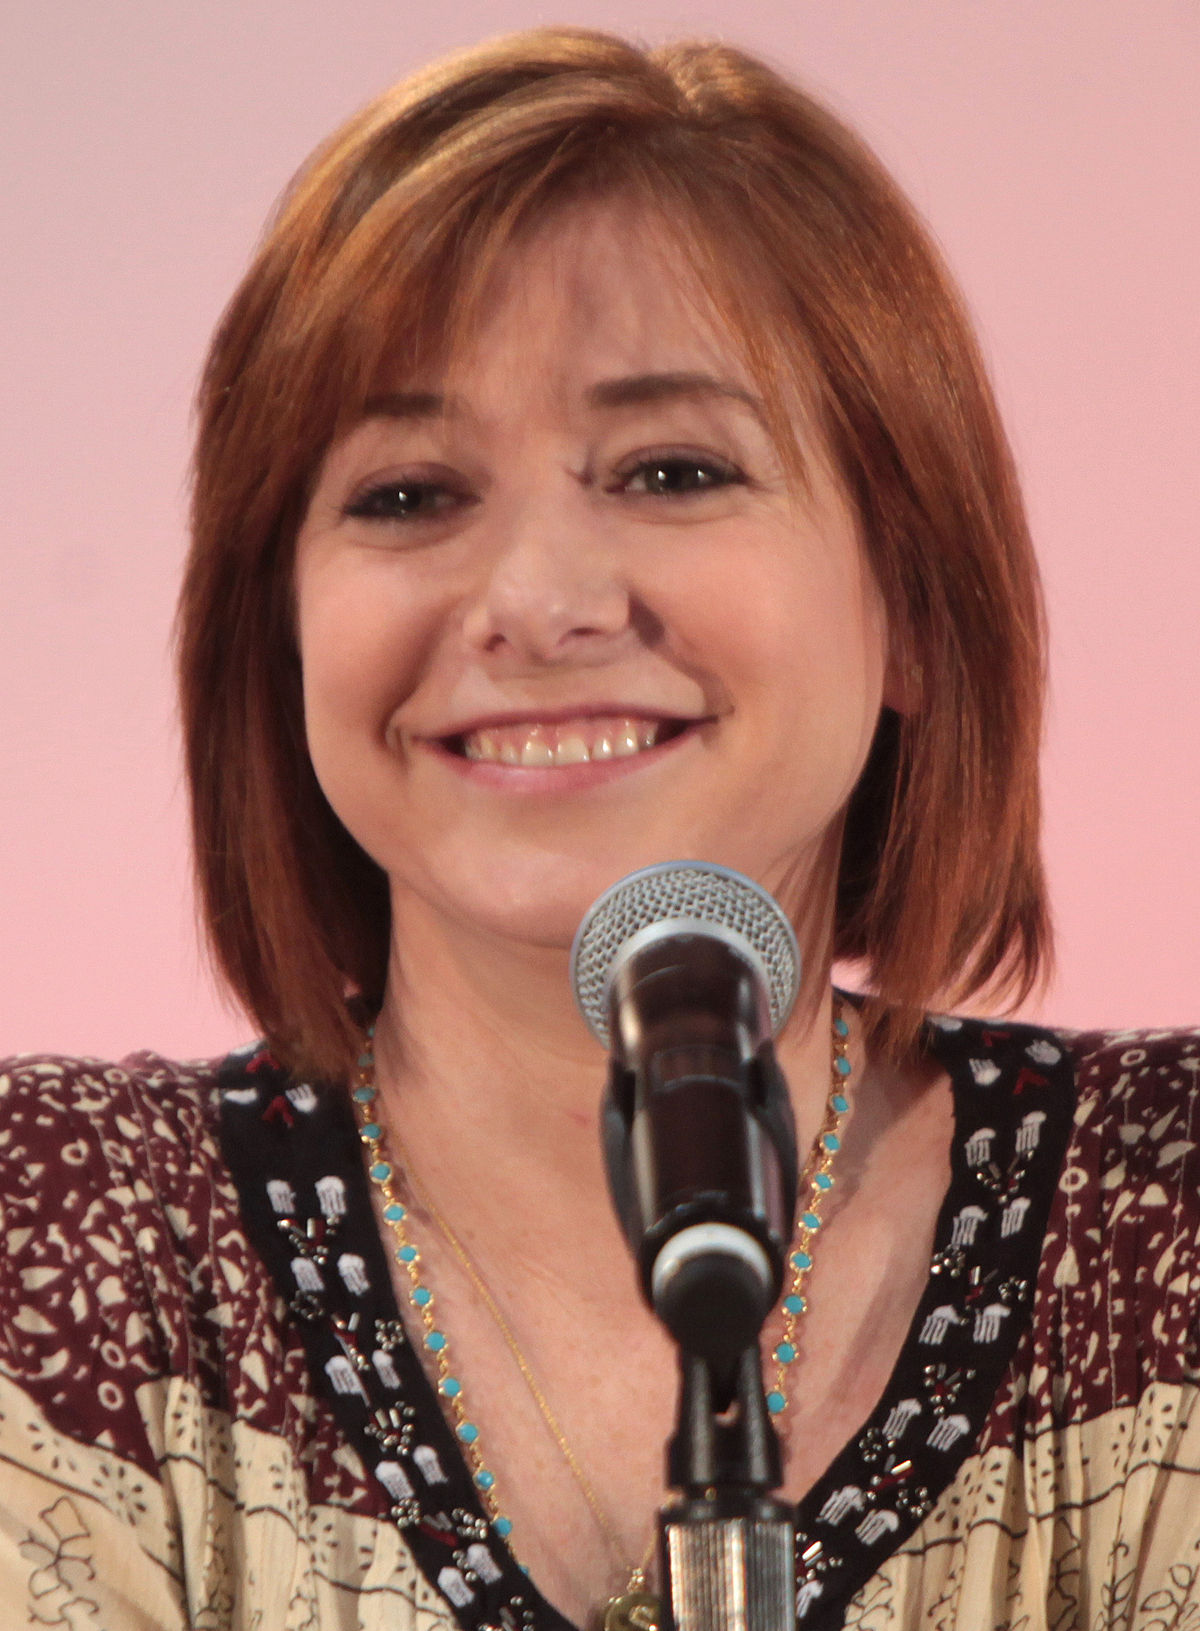 alyson hannigan - wikipedia